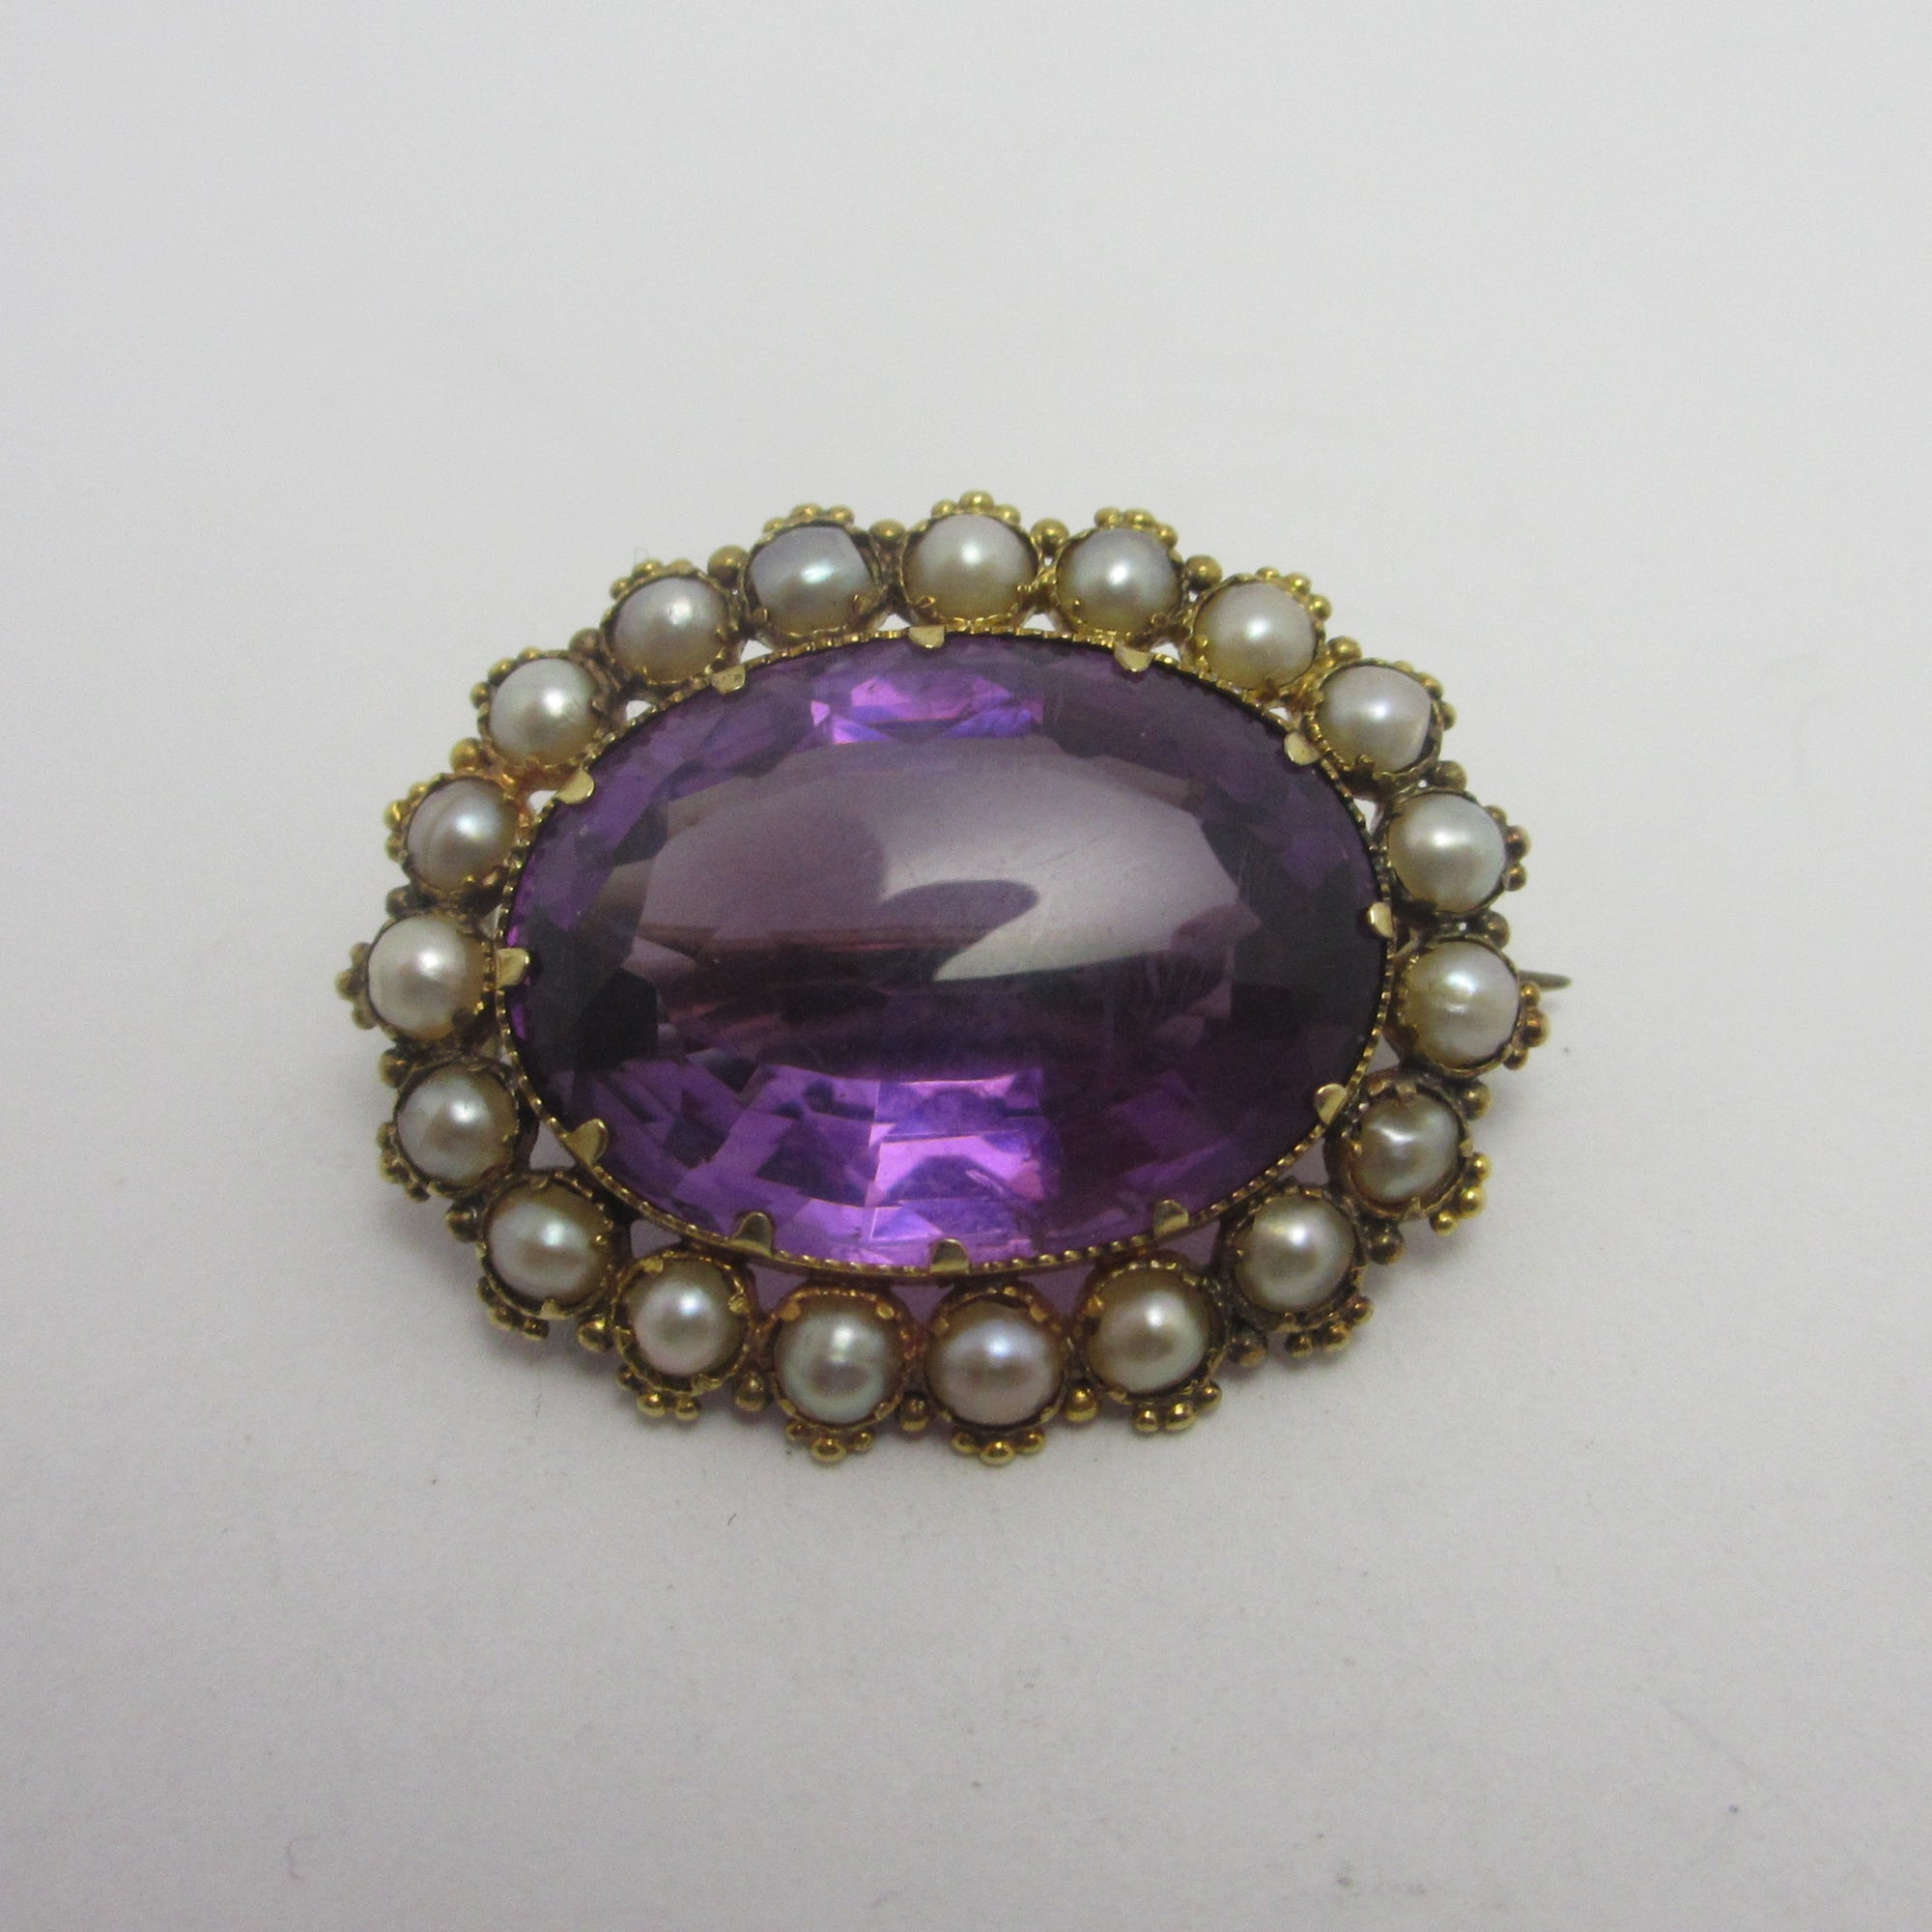 Large Real Amethyst Seed Pearl 9k Gold Brooch Pin Antique Victorian c1890